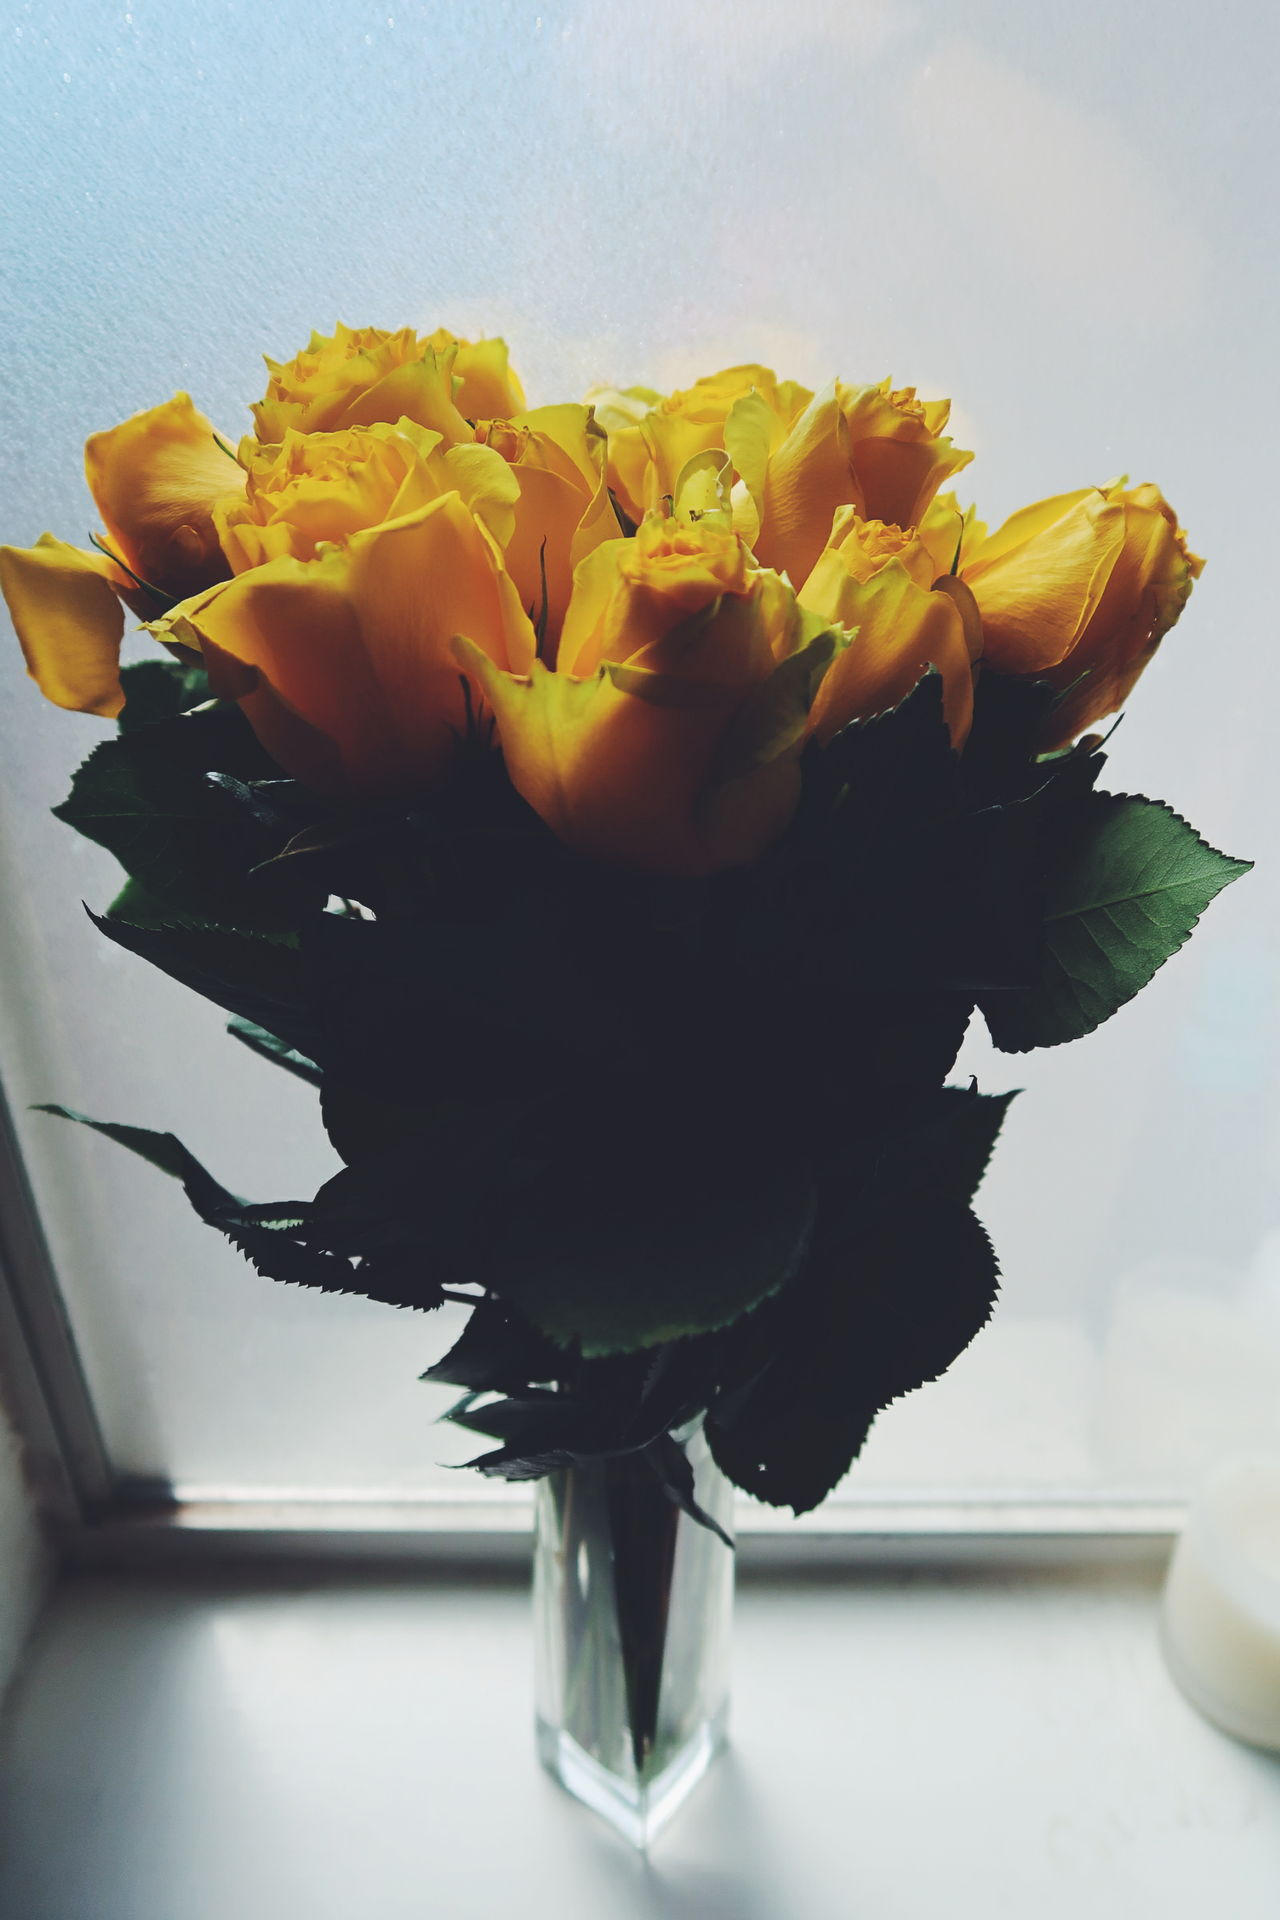 Fragility Indoors  Flower Petal No People Underwater Freshness Nature Close-up Flower Head Day Yellow Yellow Flowers Yellow Rose Yellow Roses